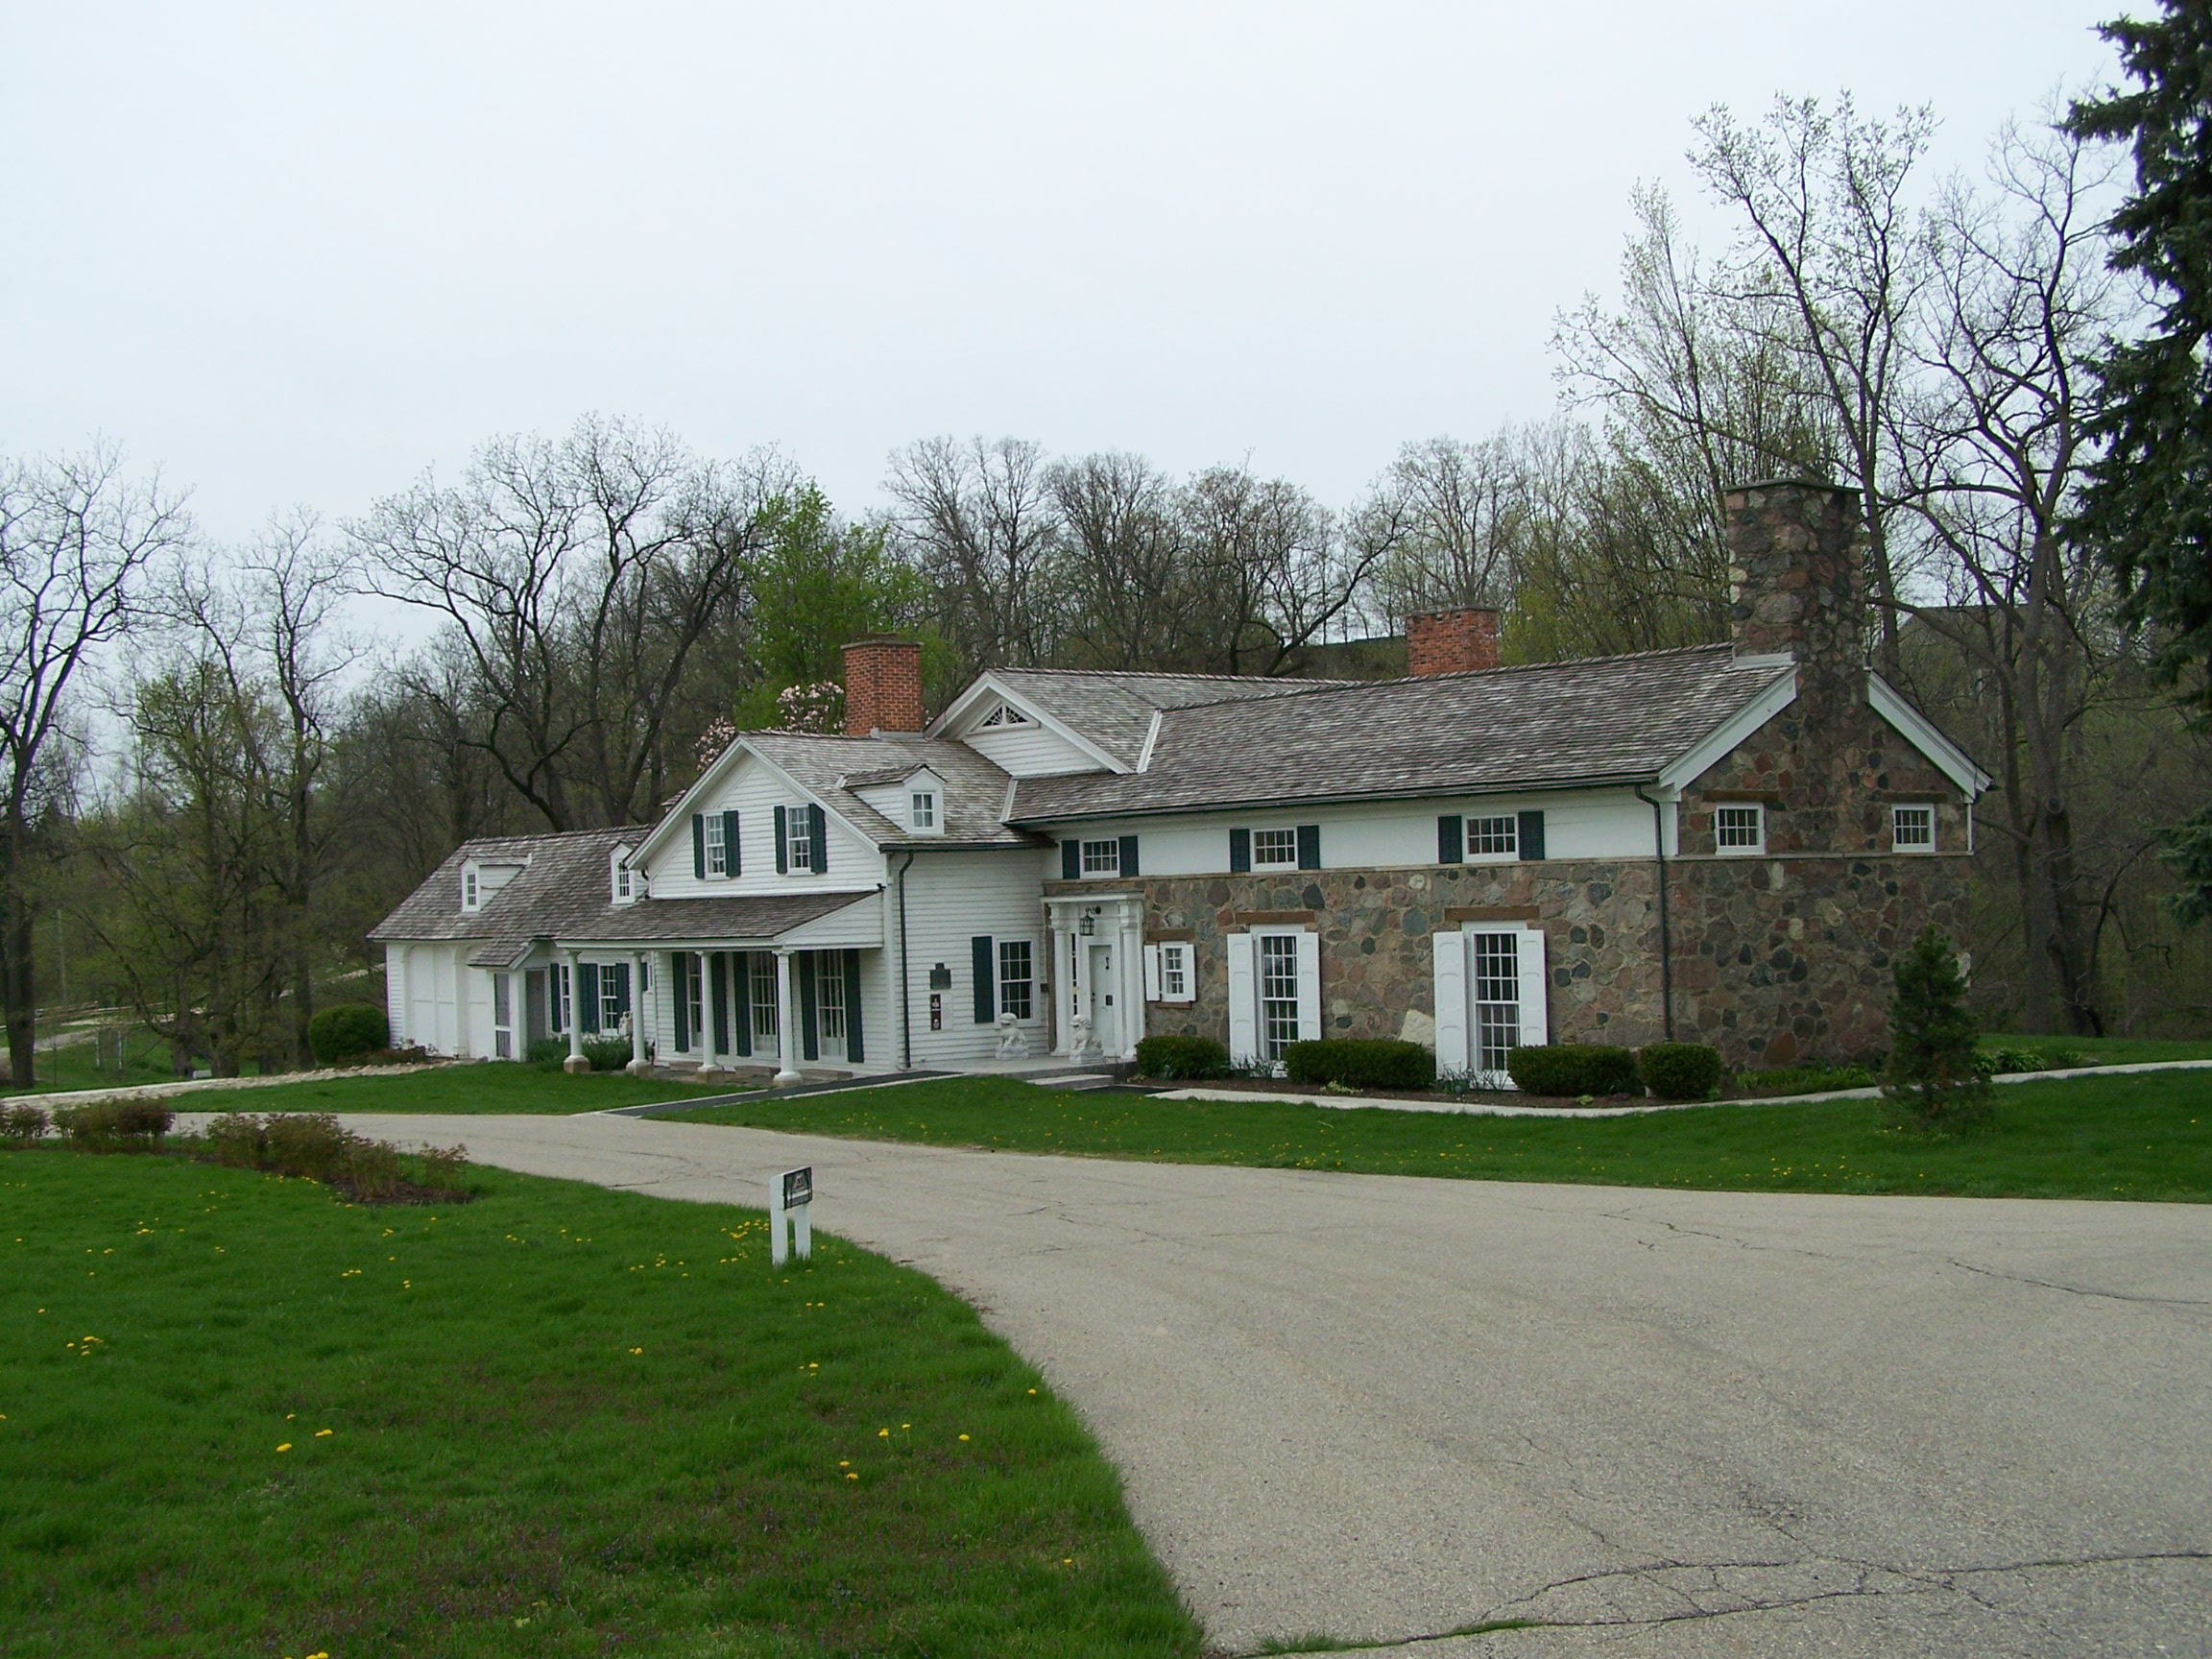 The Van Hoosen Farmhouse predates the Civil War and is listed on the National Register of Historic Places